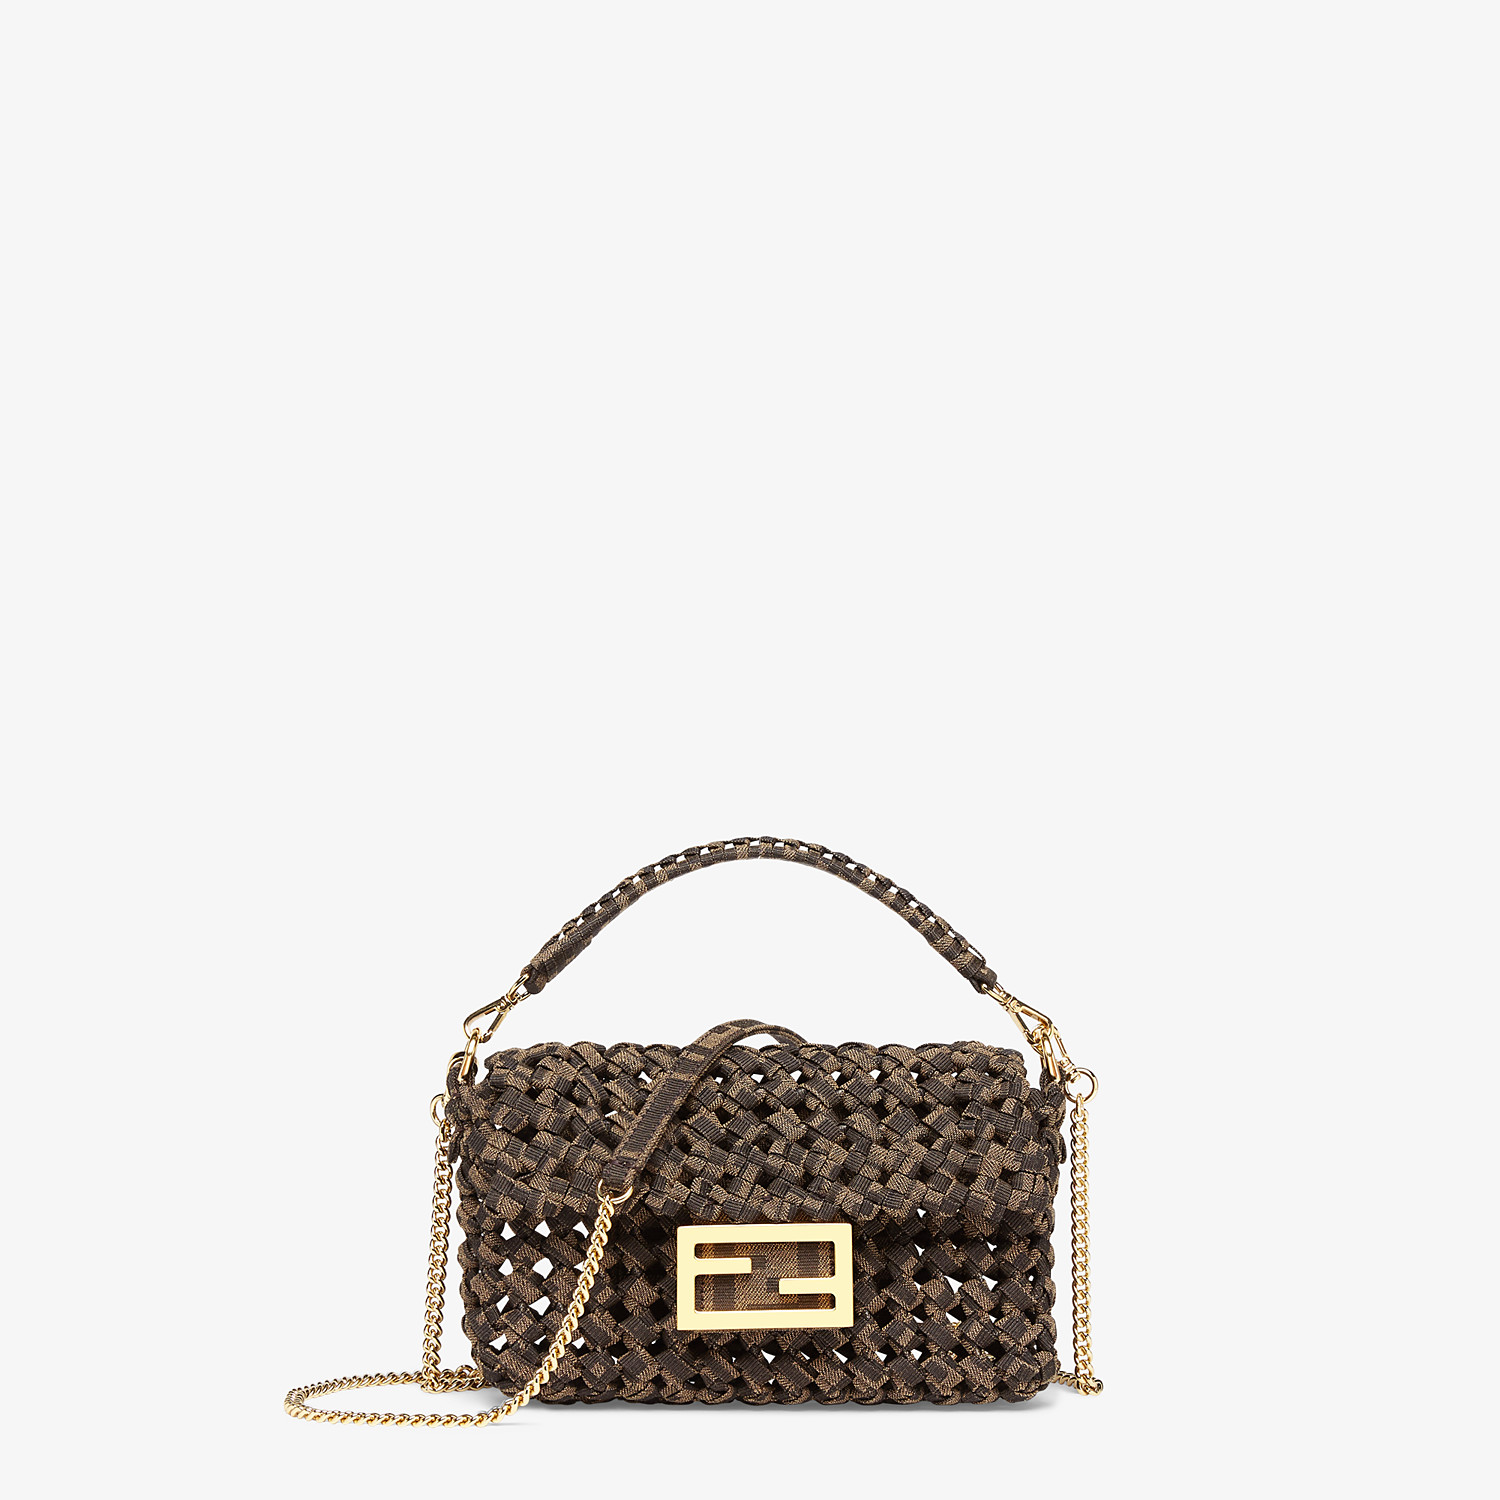 FENDI BAGUETTE - Jacquard fabric interlace bag - view 1 detail